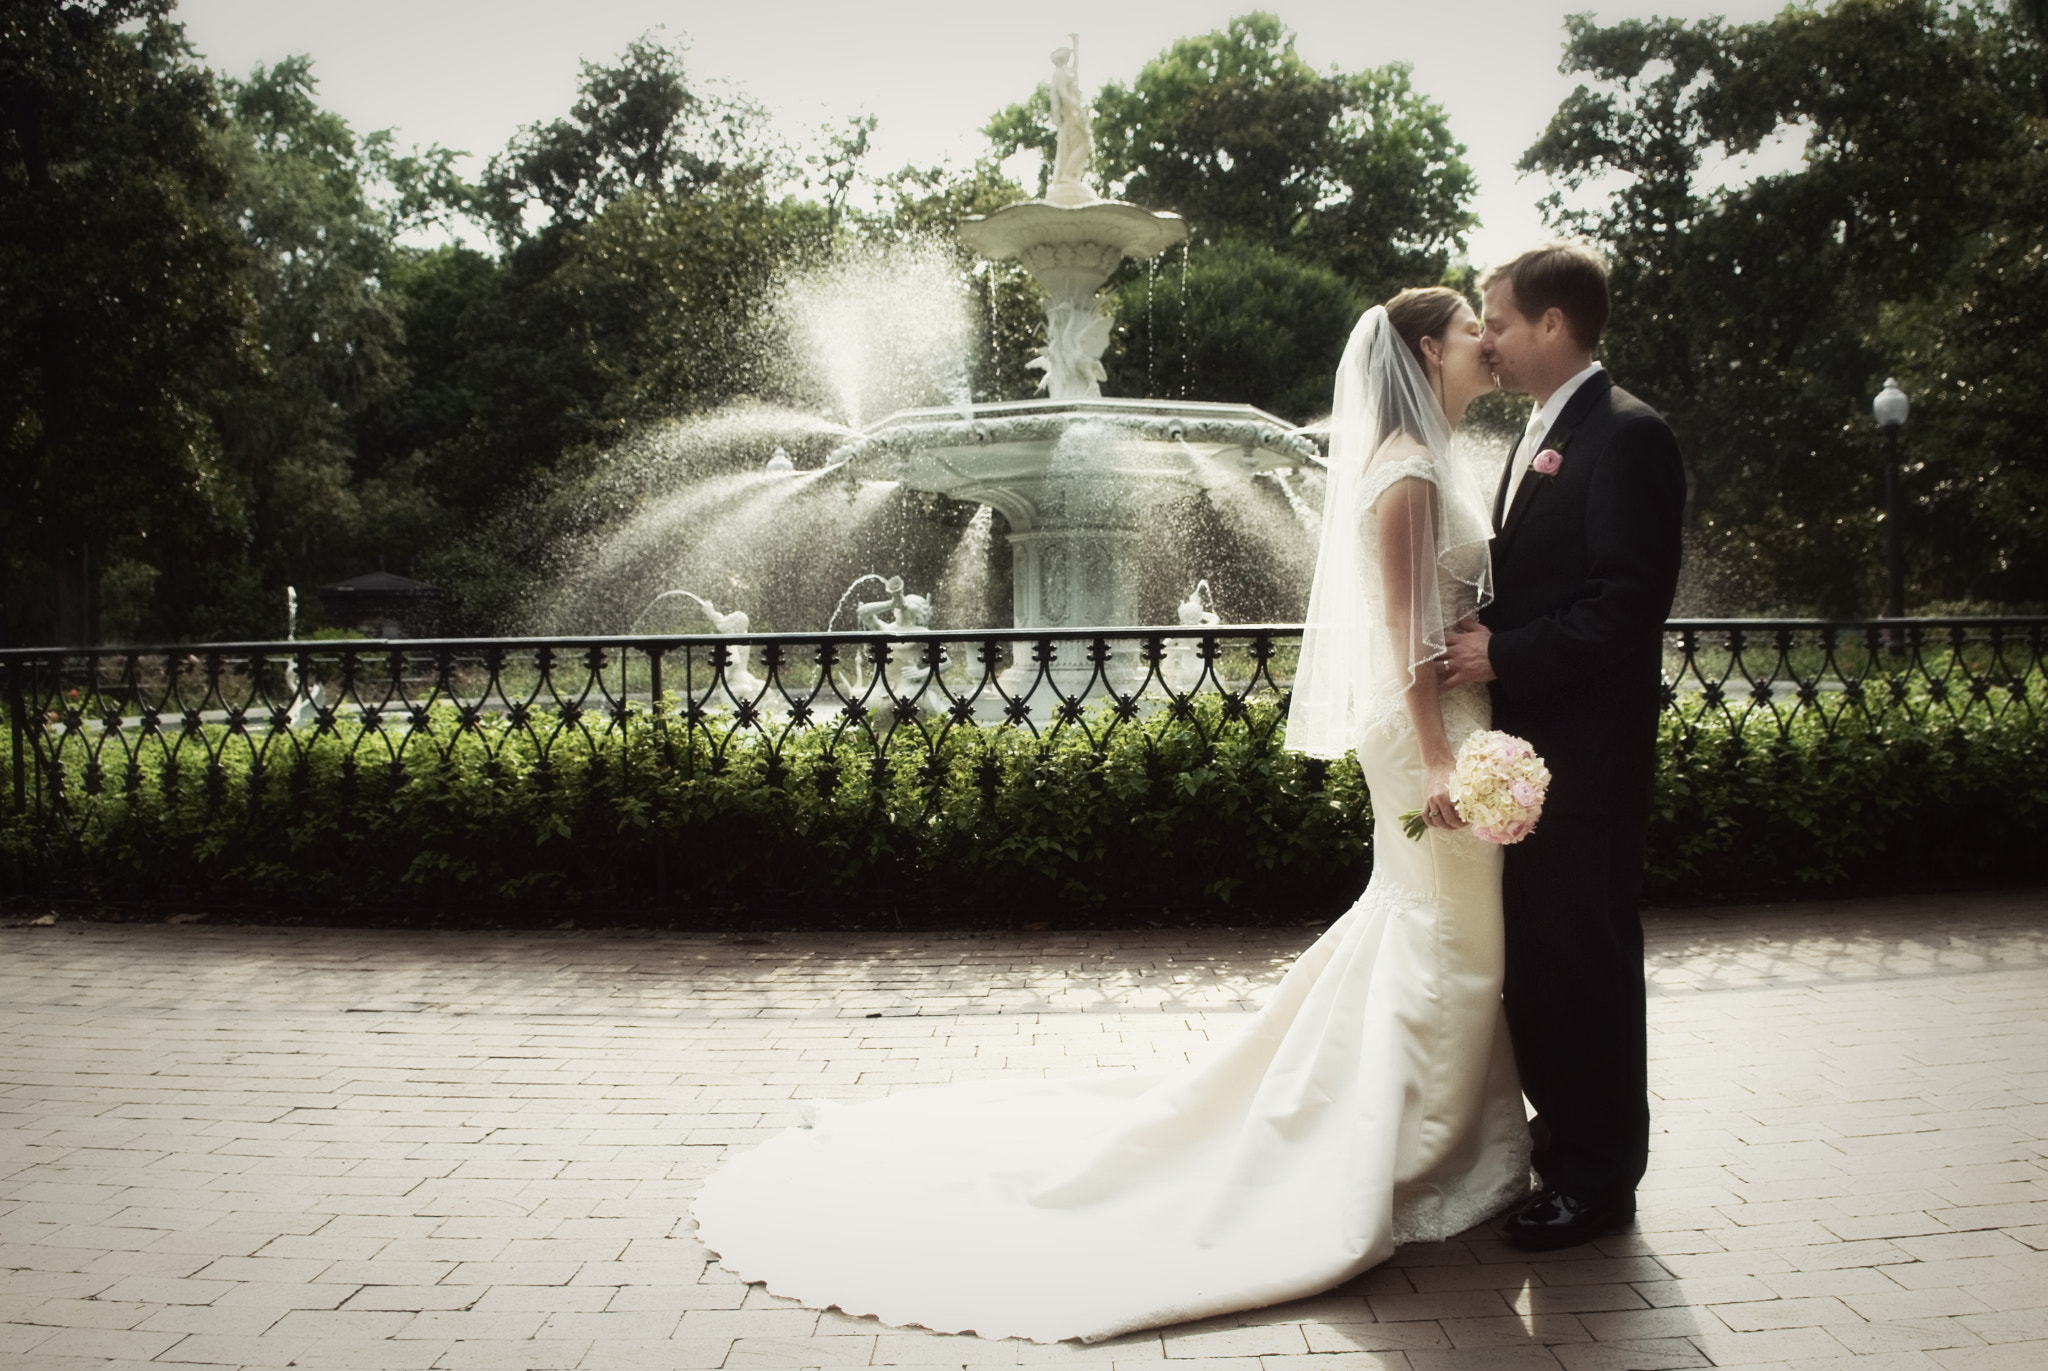 Photograph Wedding2 by Timothy Jackson on 500px